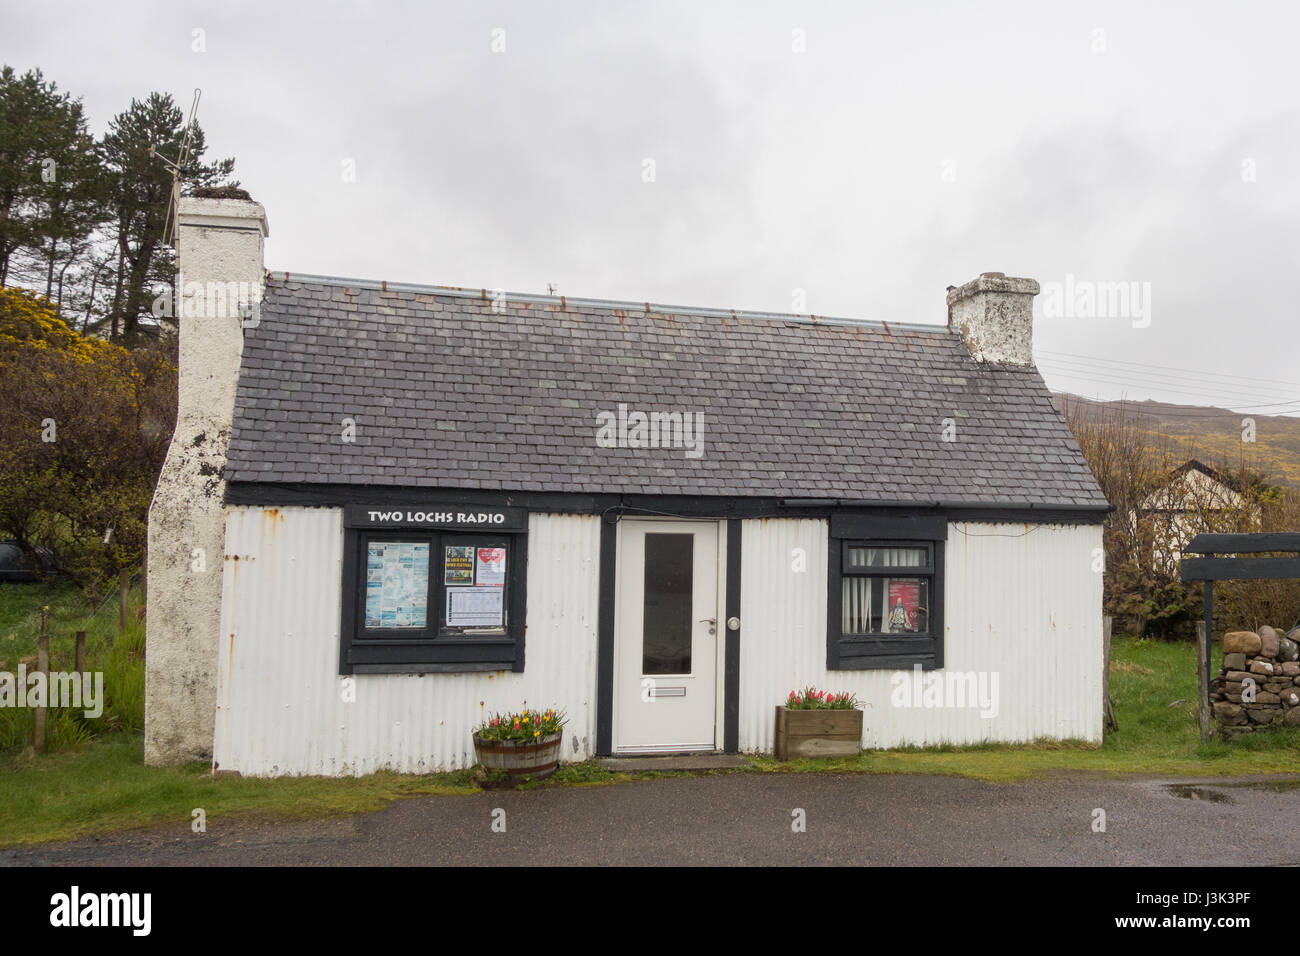 Gairloch - Two Lochs Radio - Britains smallest commercial radio station and community broadcaster, Wester Ross, - Stock Image